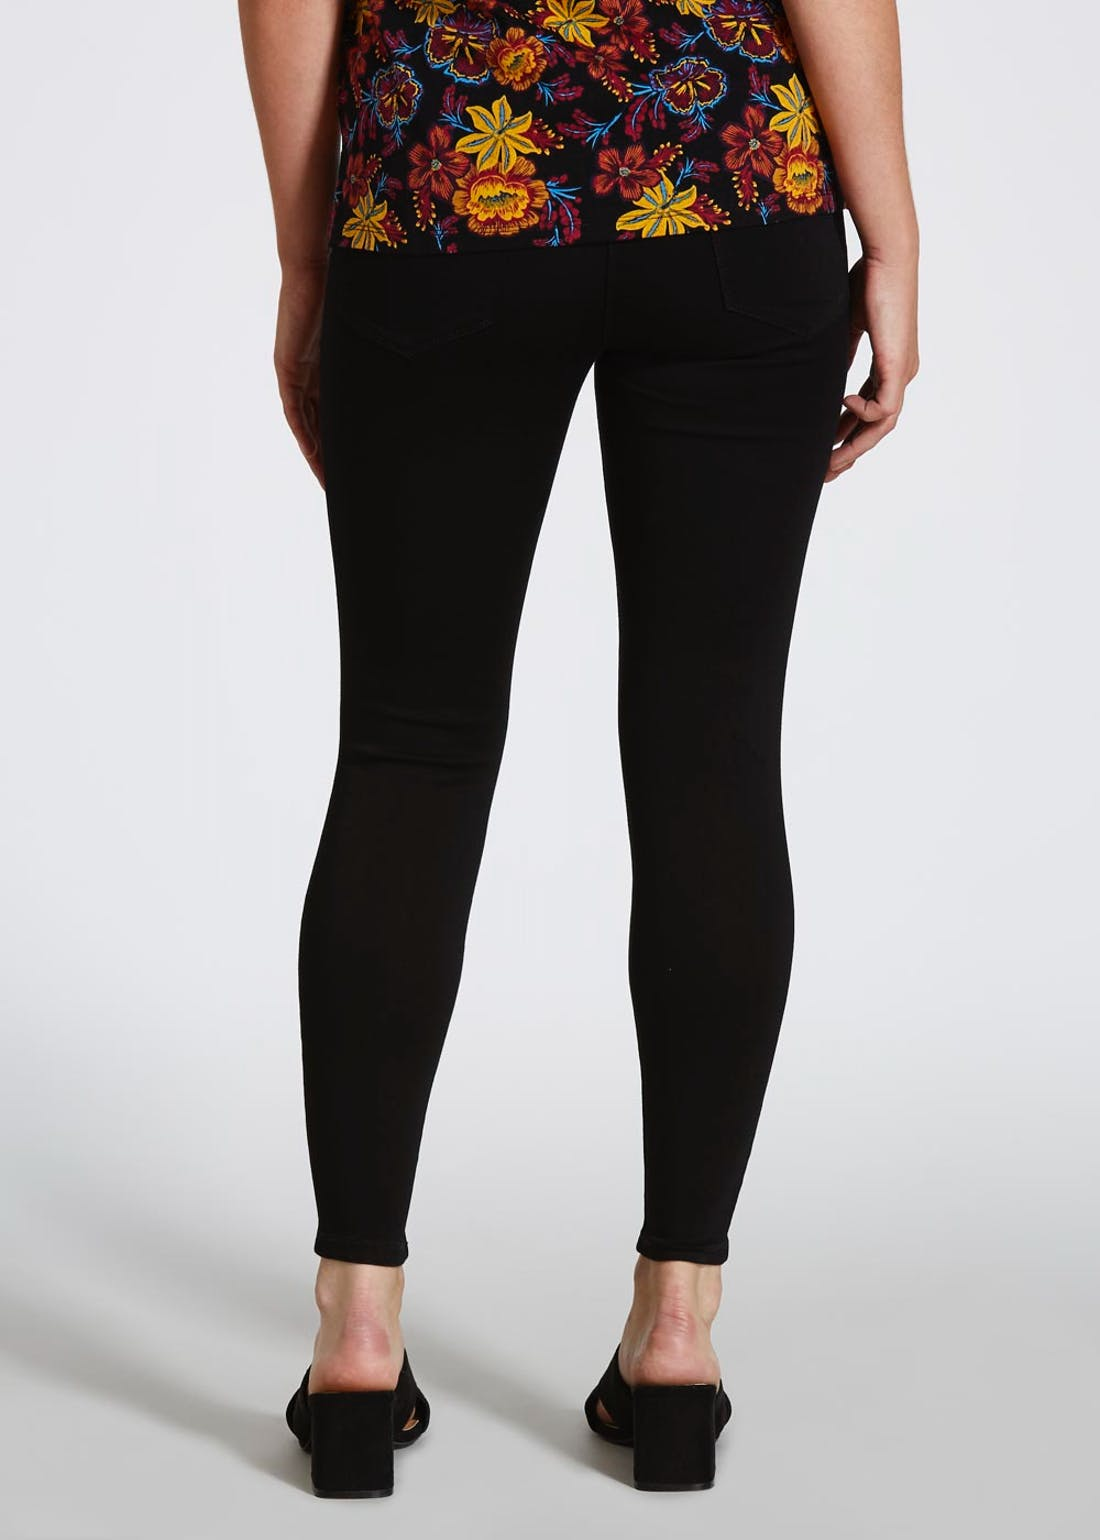 Papaya Petite Jessie High Waisted Jeans